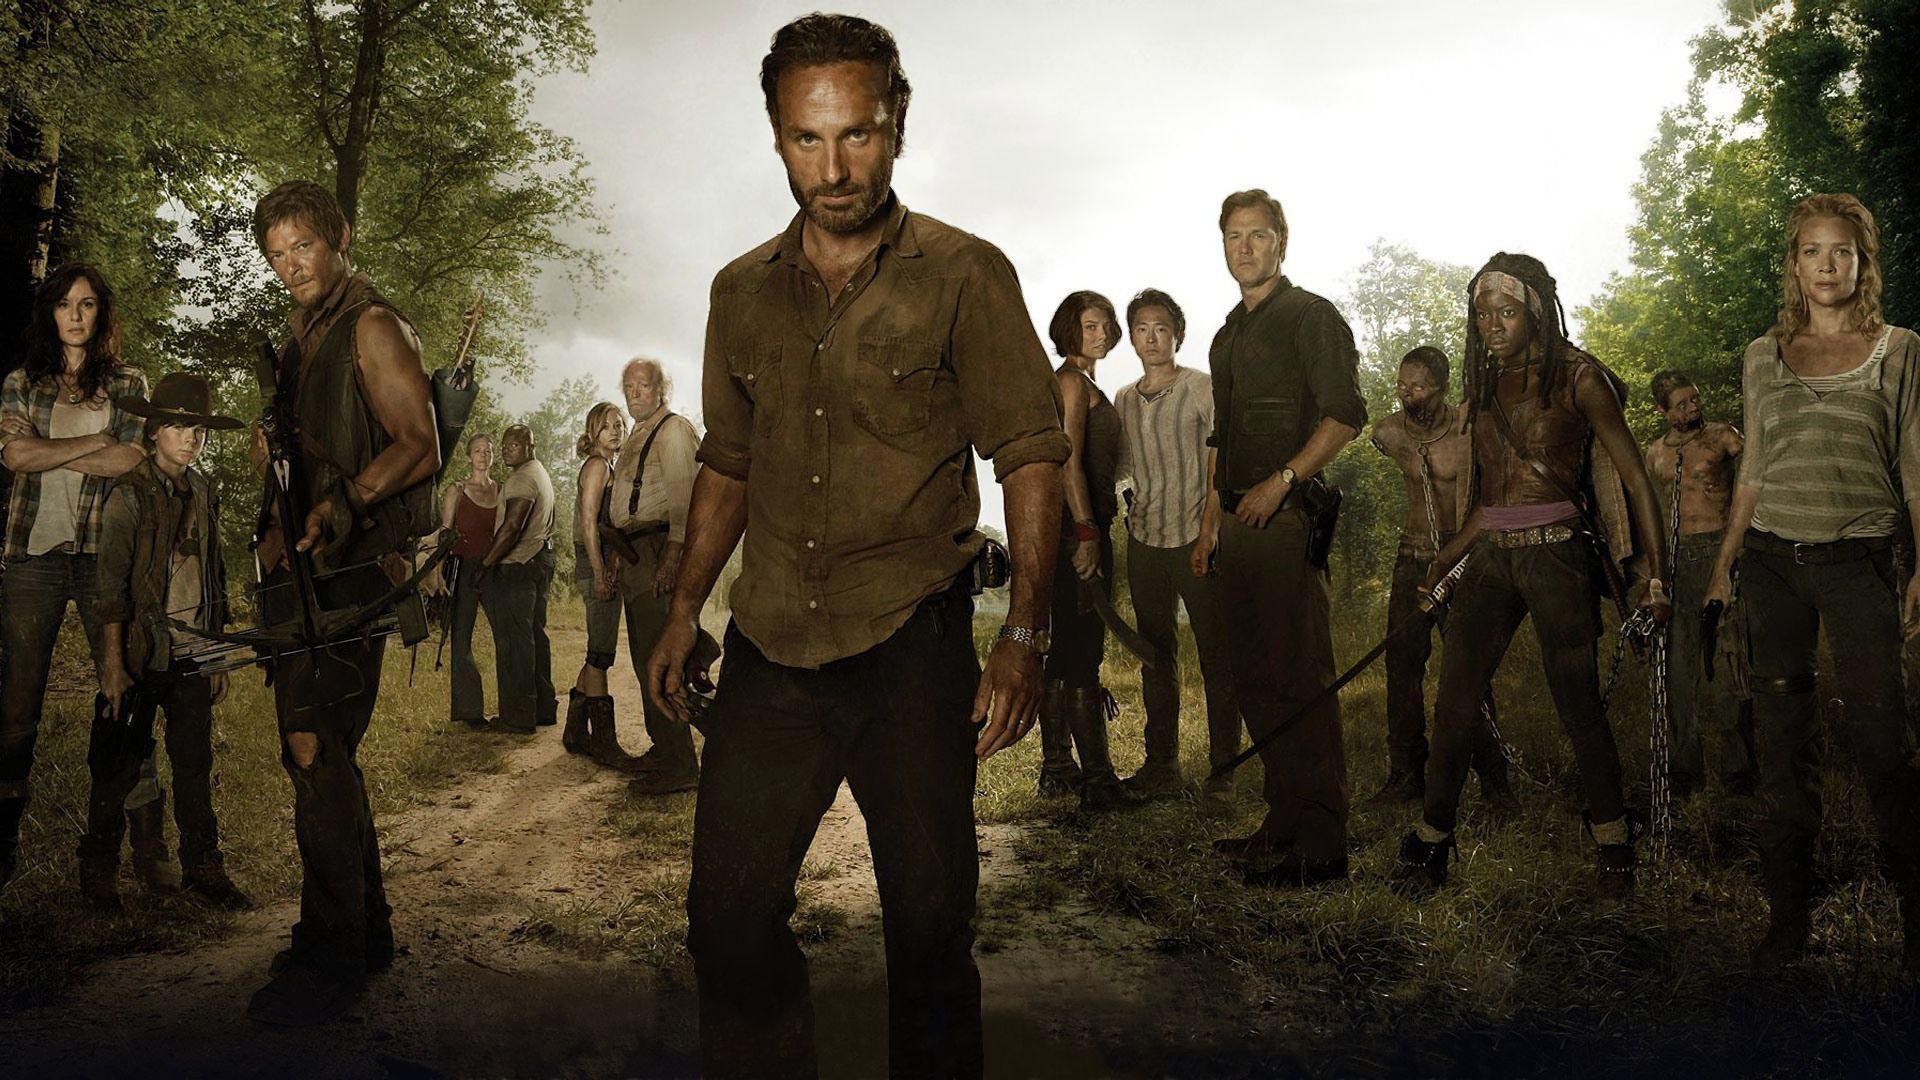 The Walking Dead Wallpapers 1920x1080 - Wallpaper Cave